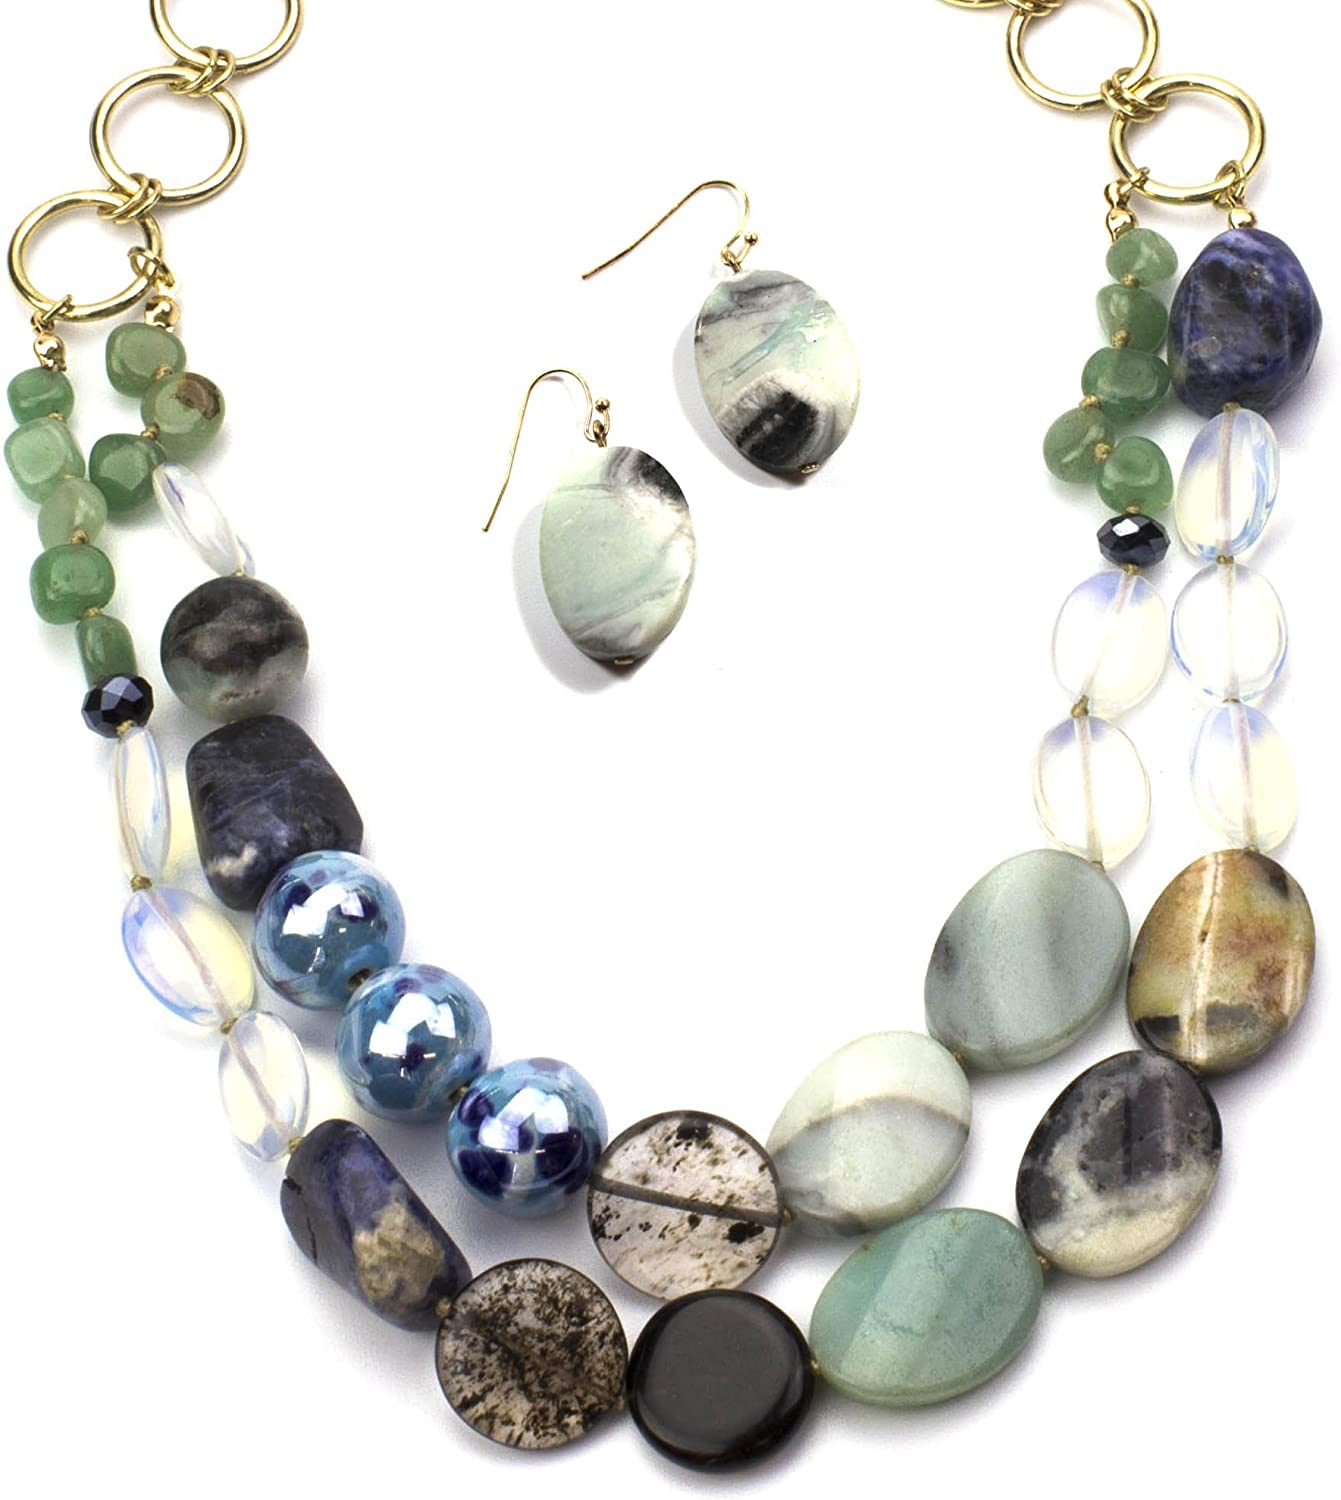 Womens Jewelry Genuine Sodalite, Amazonite, Crysolite (Olivine) Mixed with Glass Beads Create This Hand Crafted Necklace (18